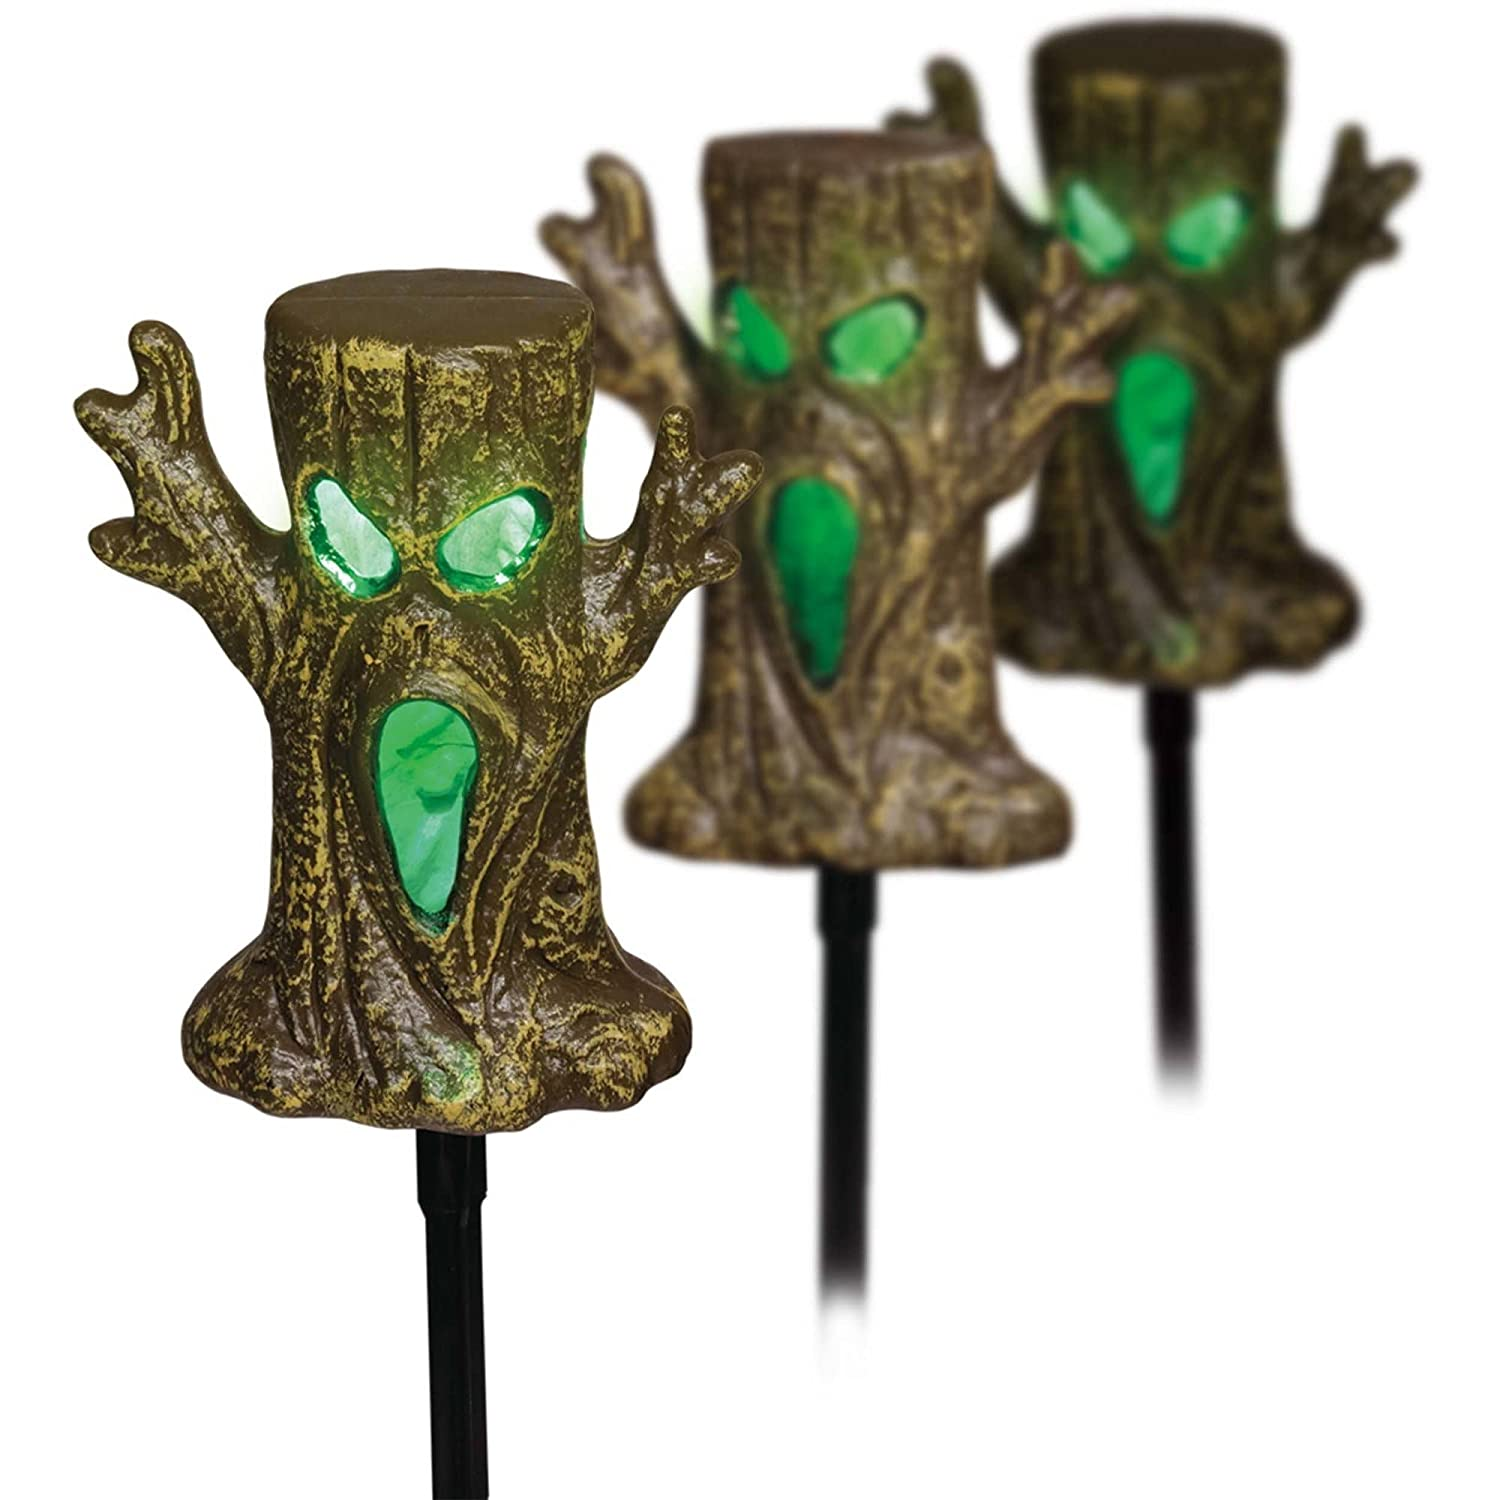 Light Up Spookie Trees Lawn Stakes Halloween Yard Decorations - LED Lights and Sound Sensor - set of 3 Trees China 75-265